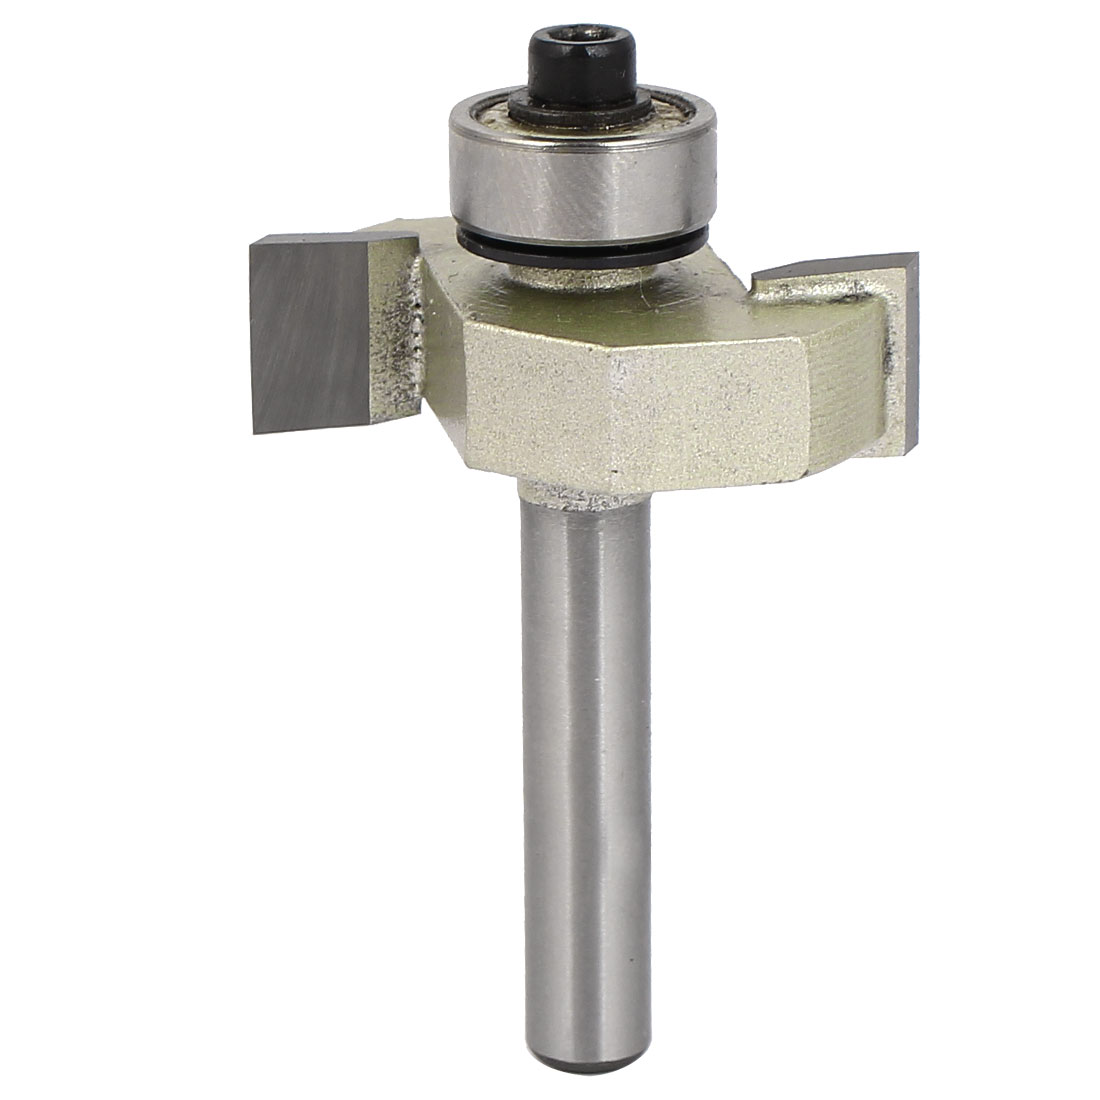 """1/4"""" Shank Dia 3/8"""" Cutting Depth Groove Forming 2-Flute T-Slot Router Bit"""